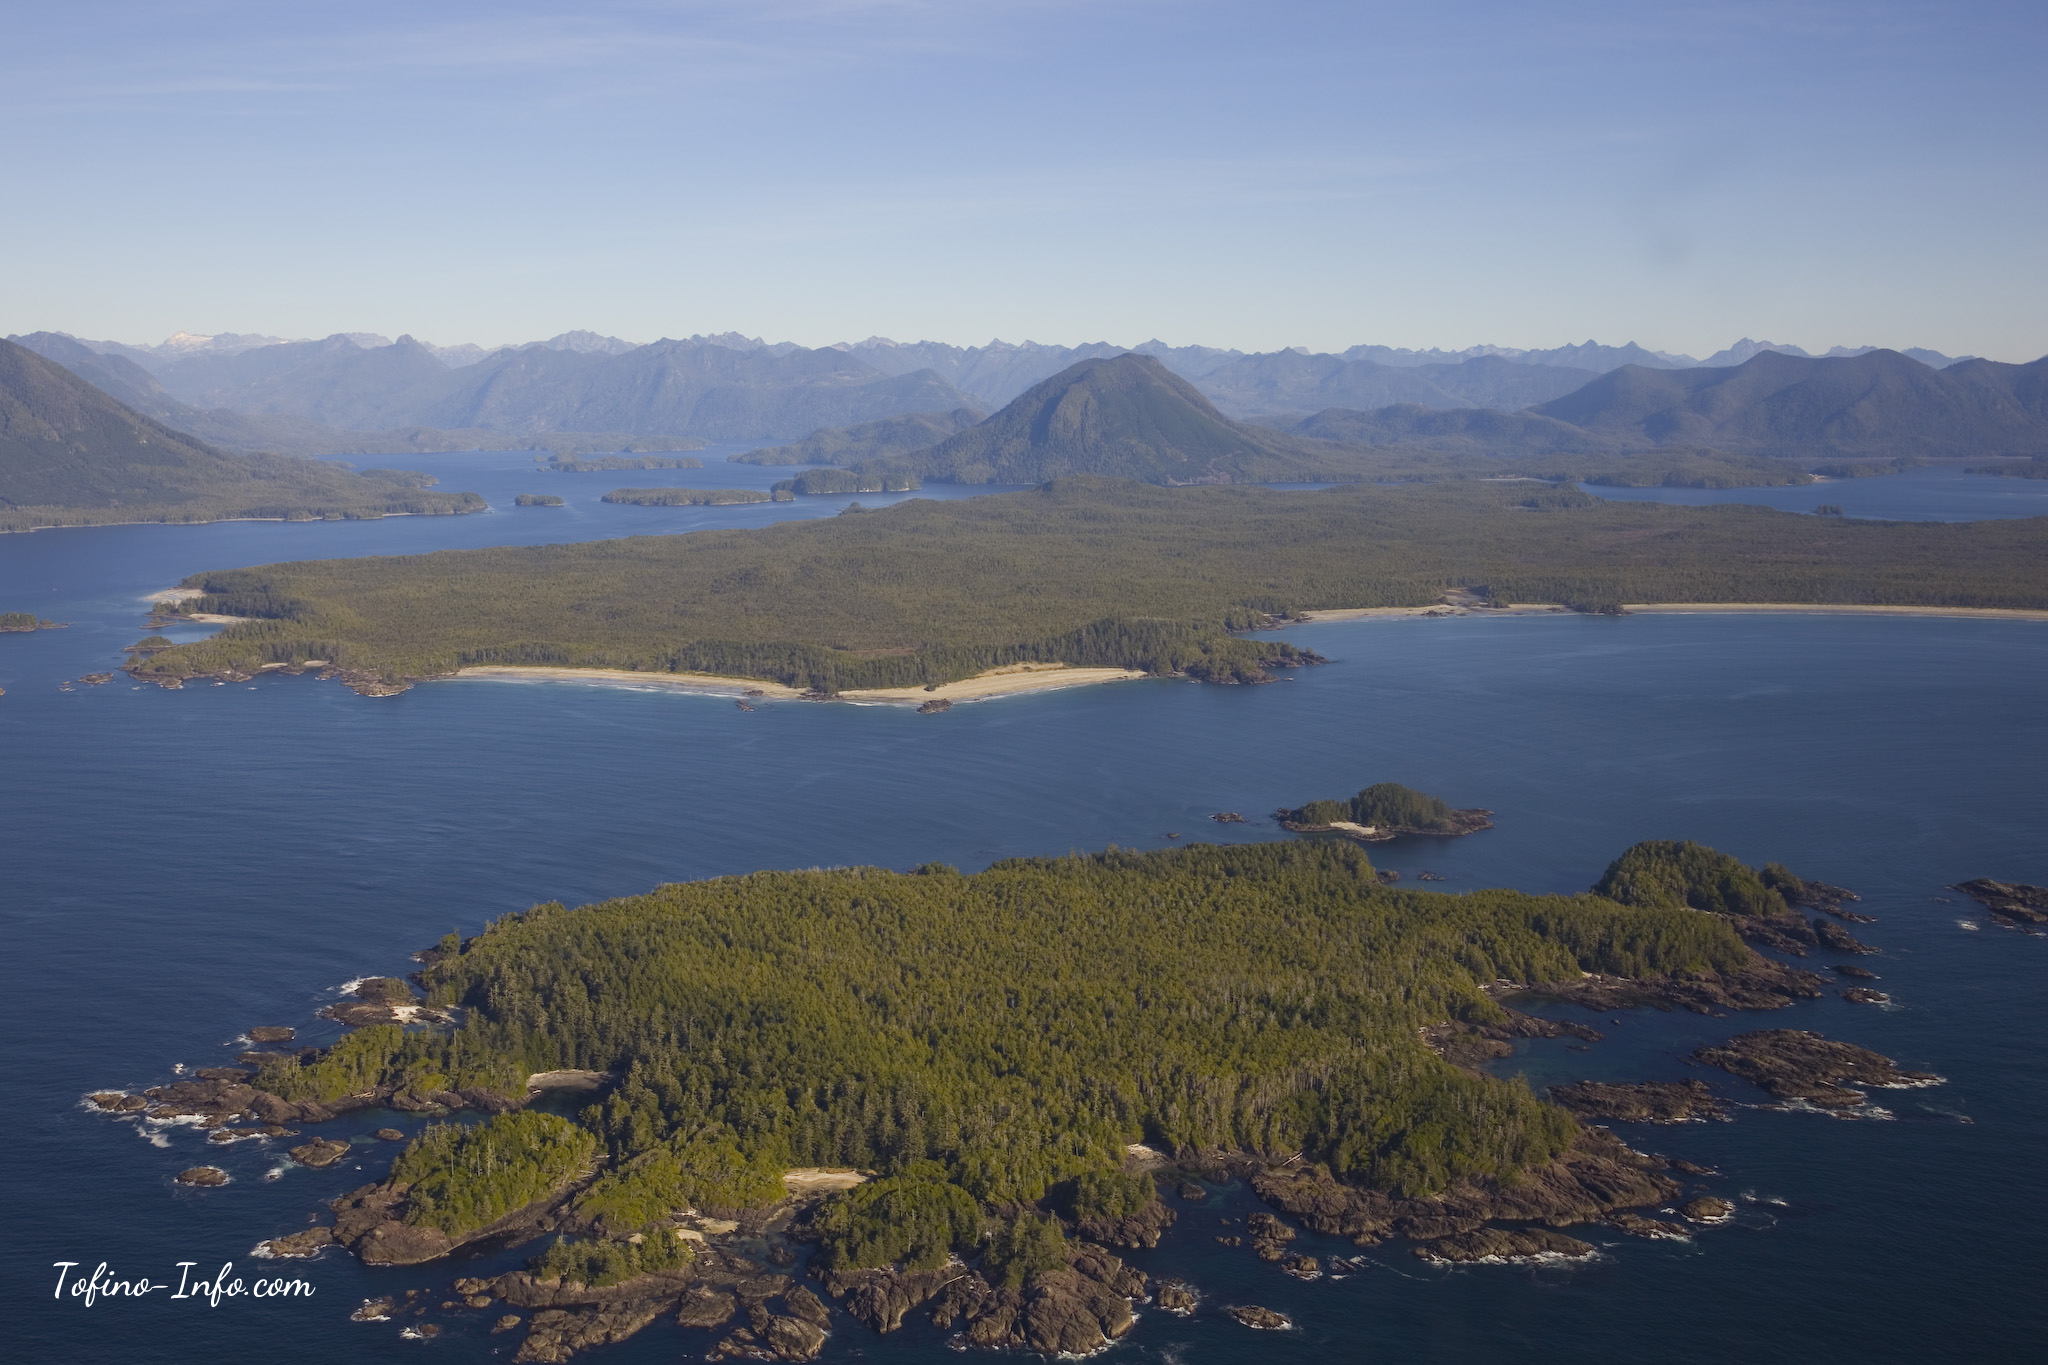 Top 10 Things To Do In Tofino BC Surfing And More